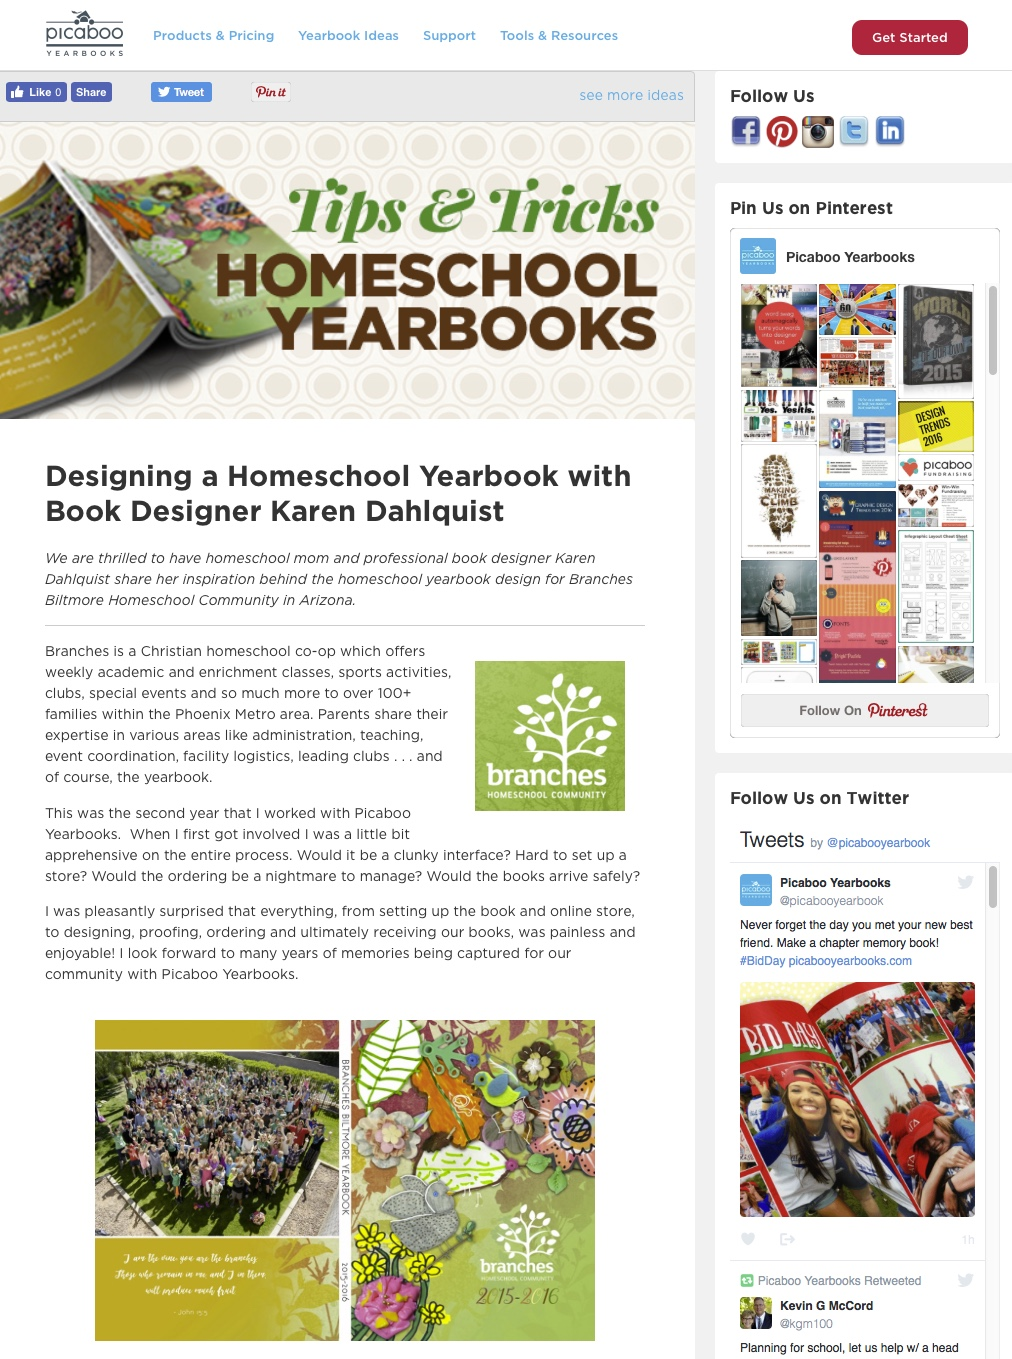 graphic design for books and yearbooks